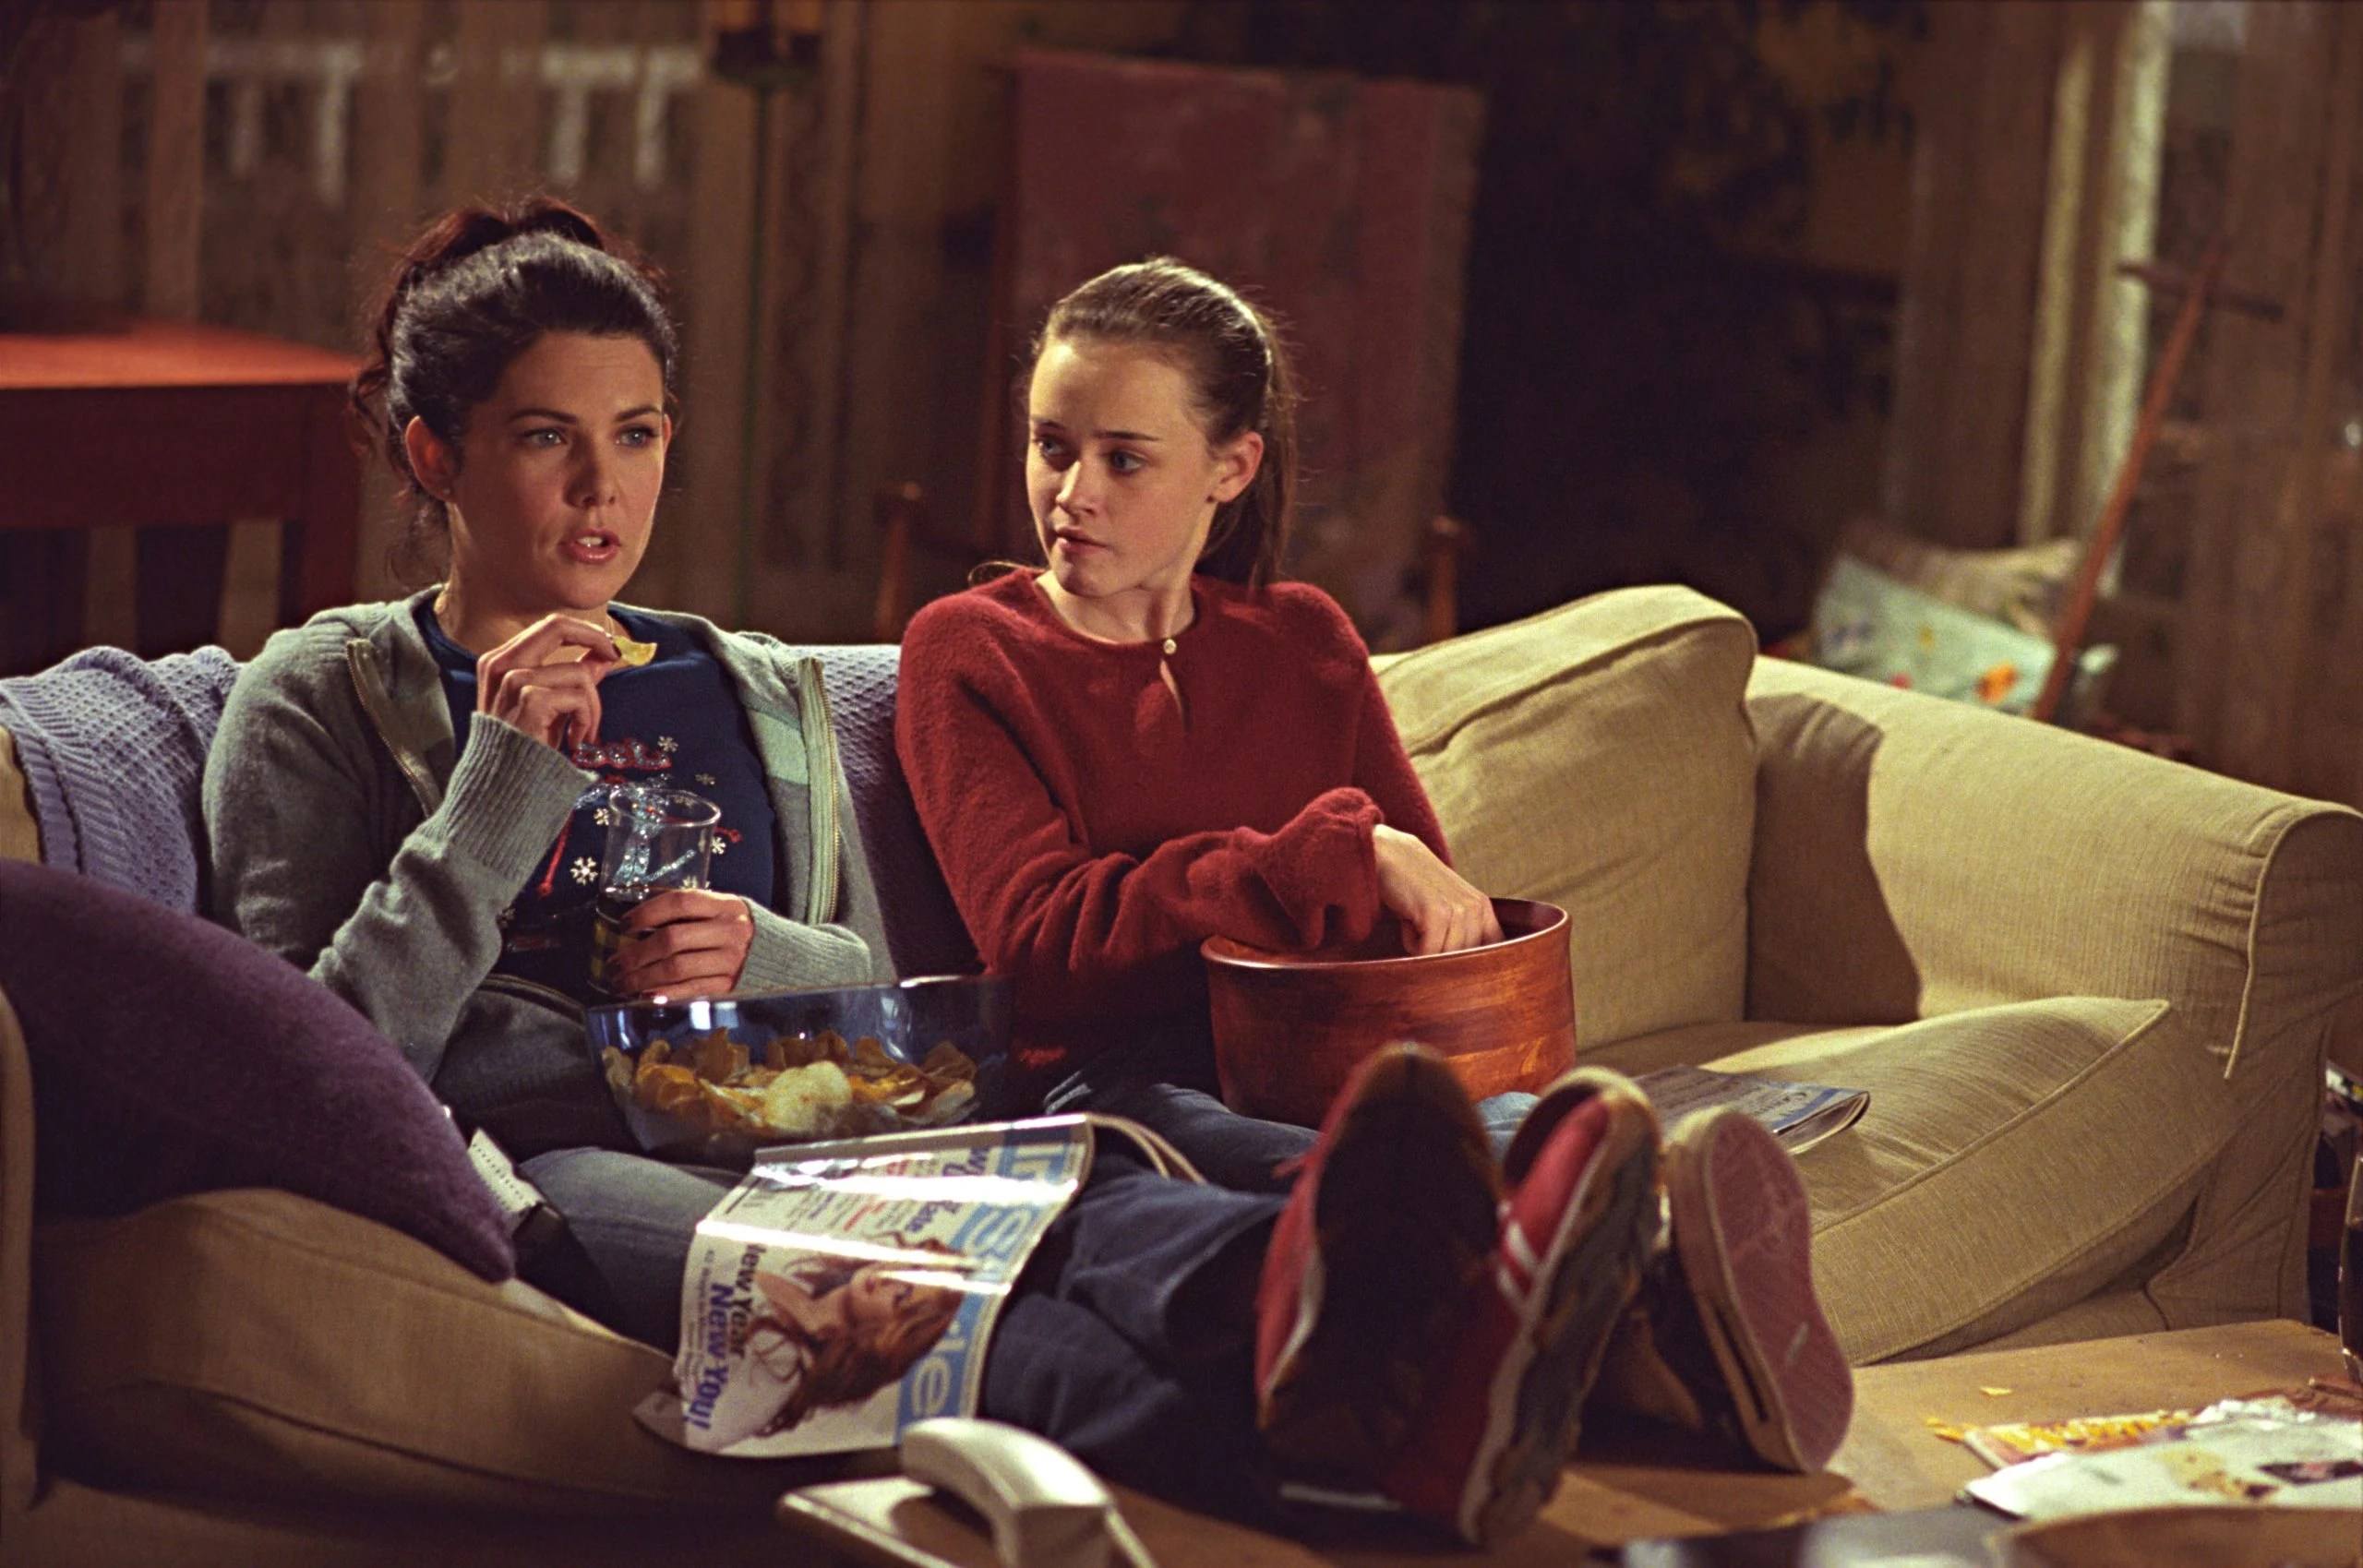 Gilmore Girls. Instead of getting down and out about having to shelter in place away from your girl squad, have agirls night inand get lost in these Top 10 binge worthy female-centric TV series that have strong female leads and will give you the girl-power you have been missing!